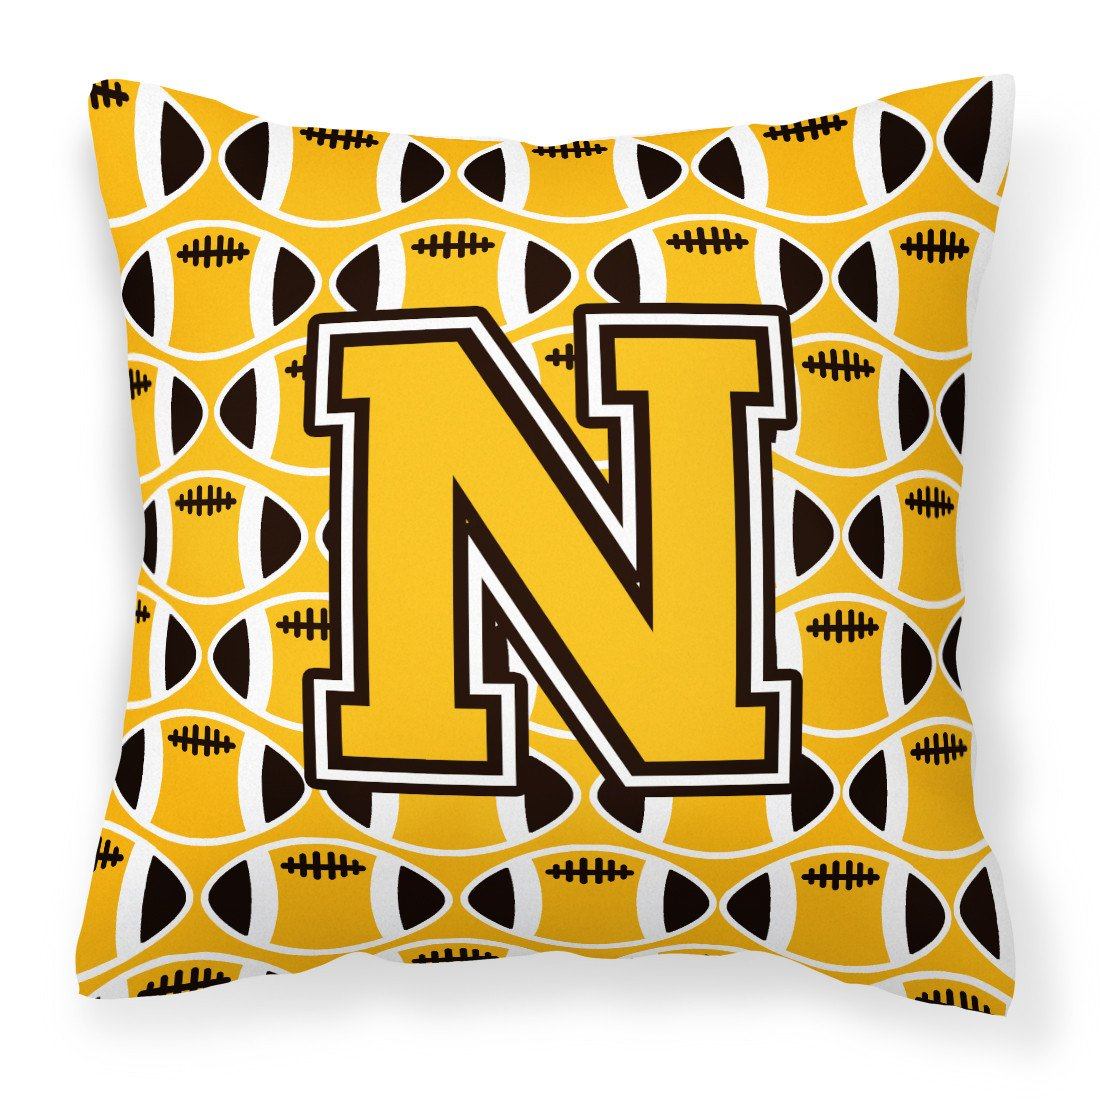 Letter N Football Black, Old Gold and White Fabric Decorative Pillow CJ1080-NPW1414 by Caroline's Treasures